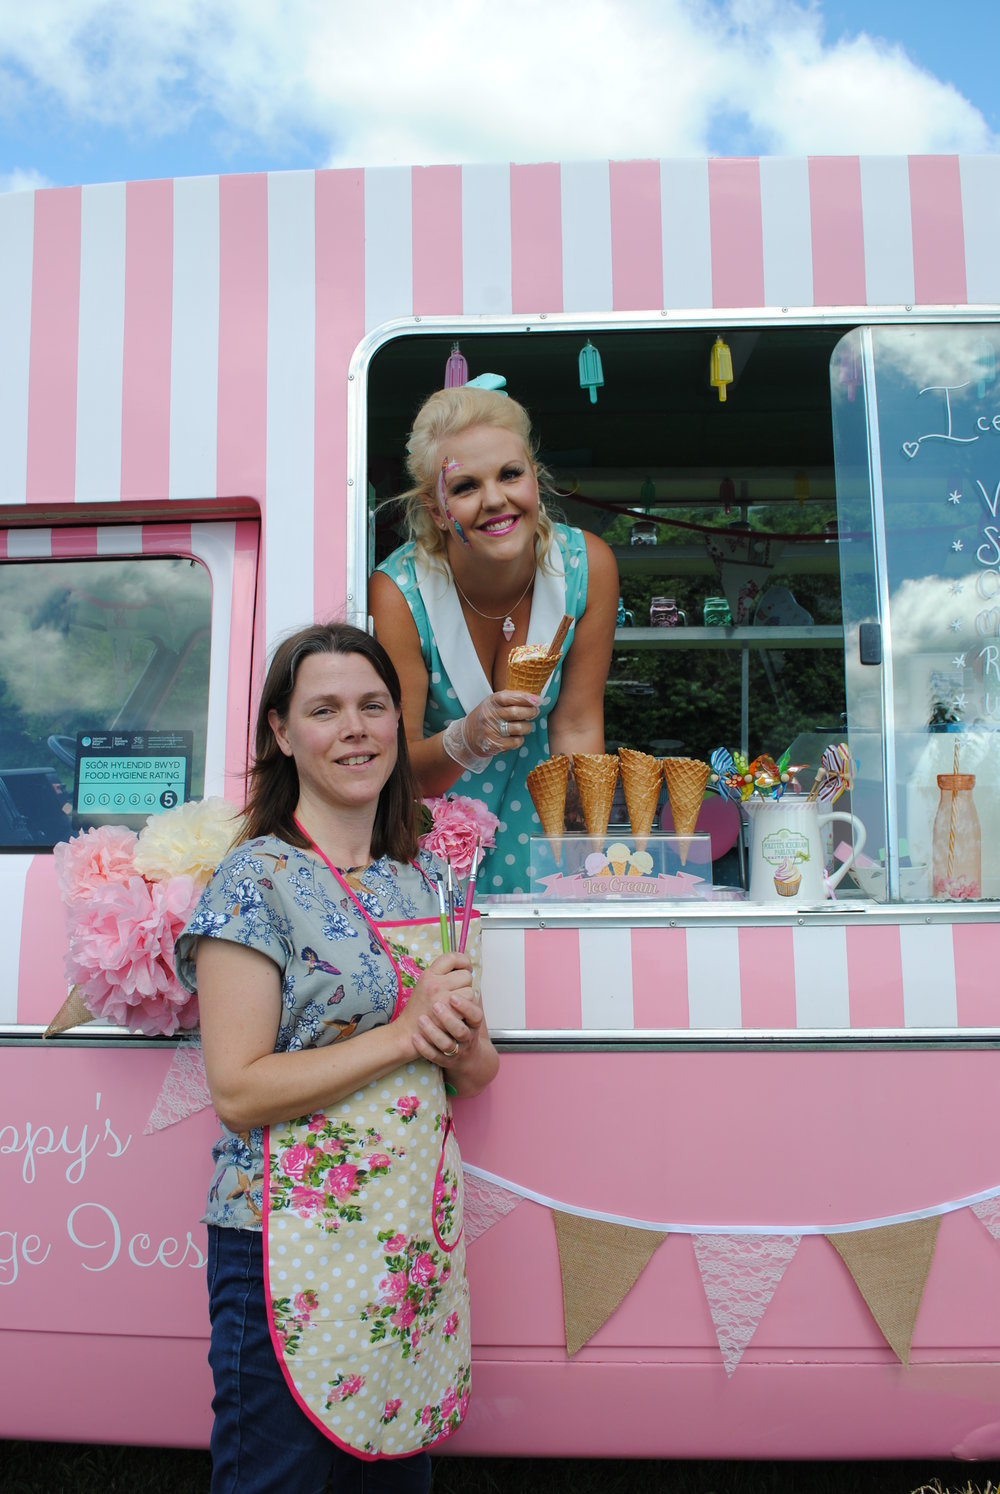 Poppy & Irene - offering Ice cream & face painting party packages